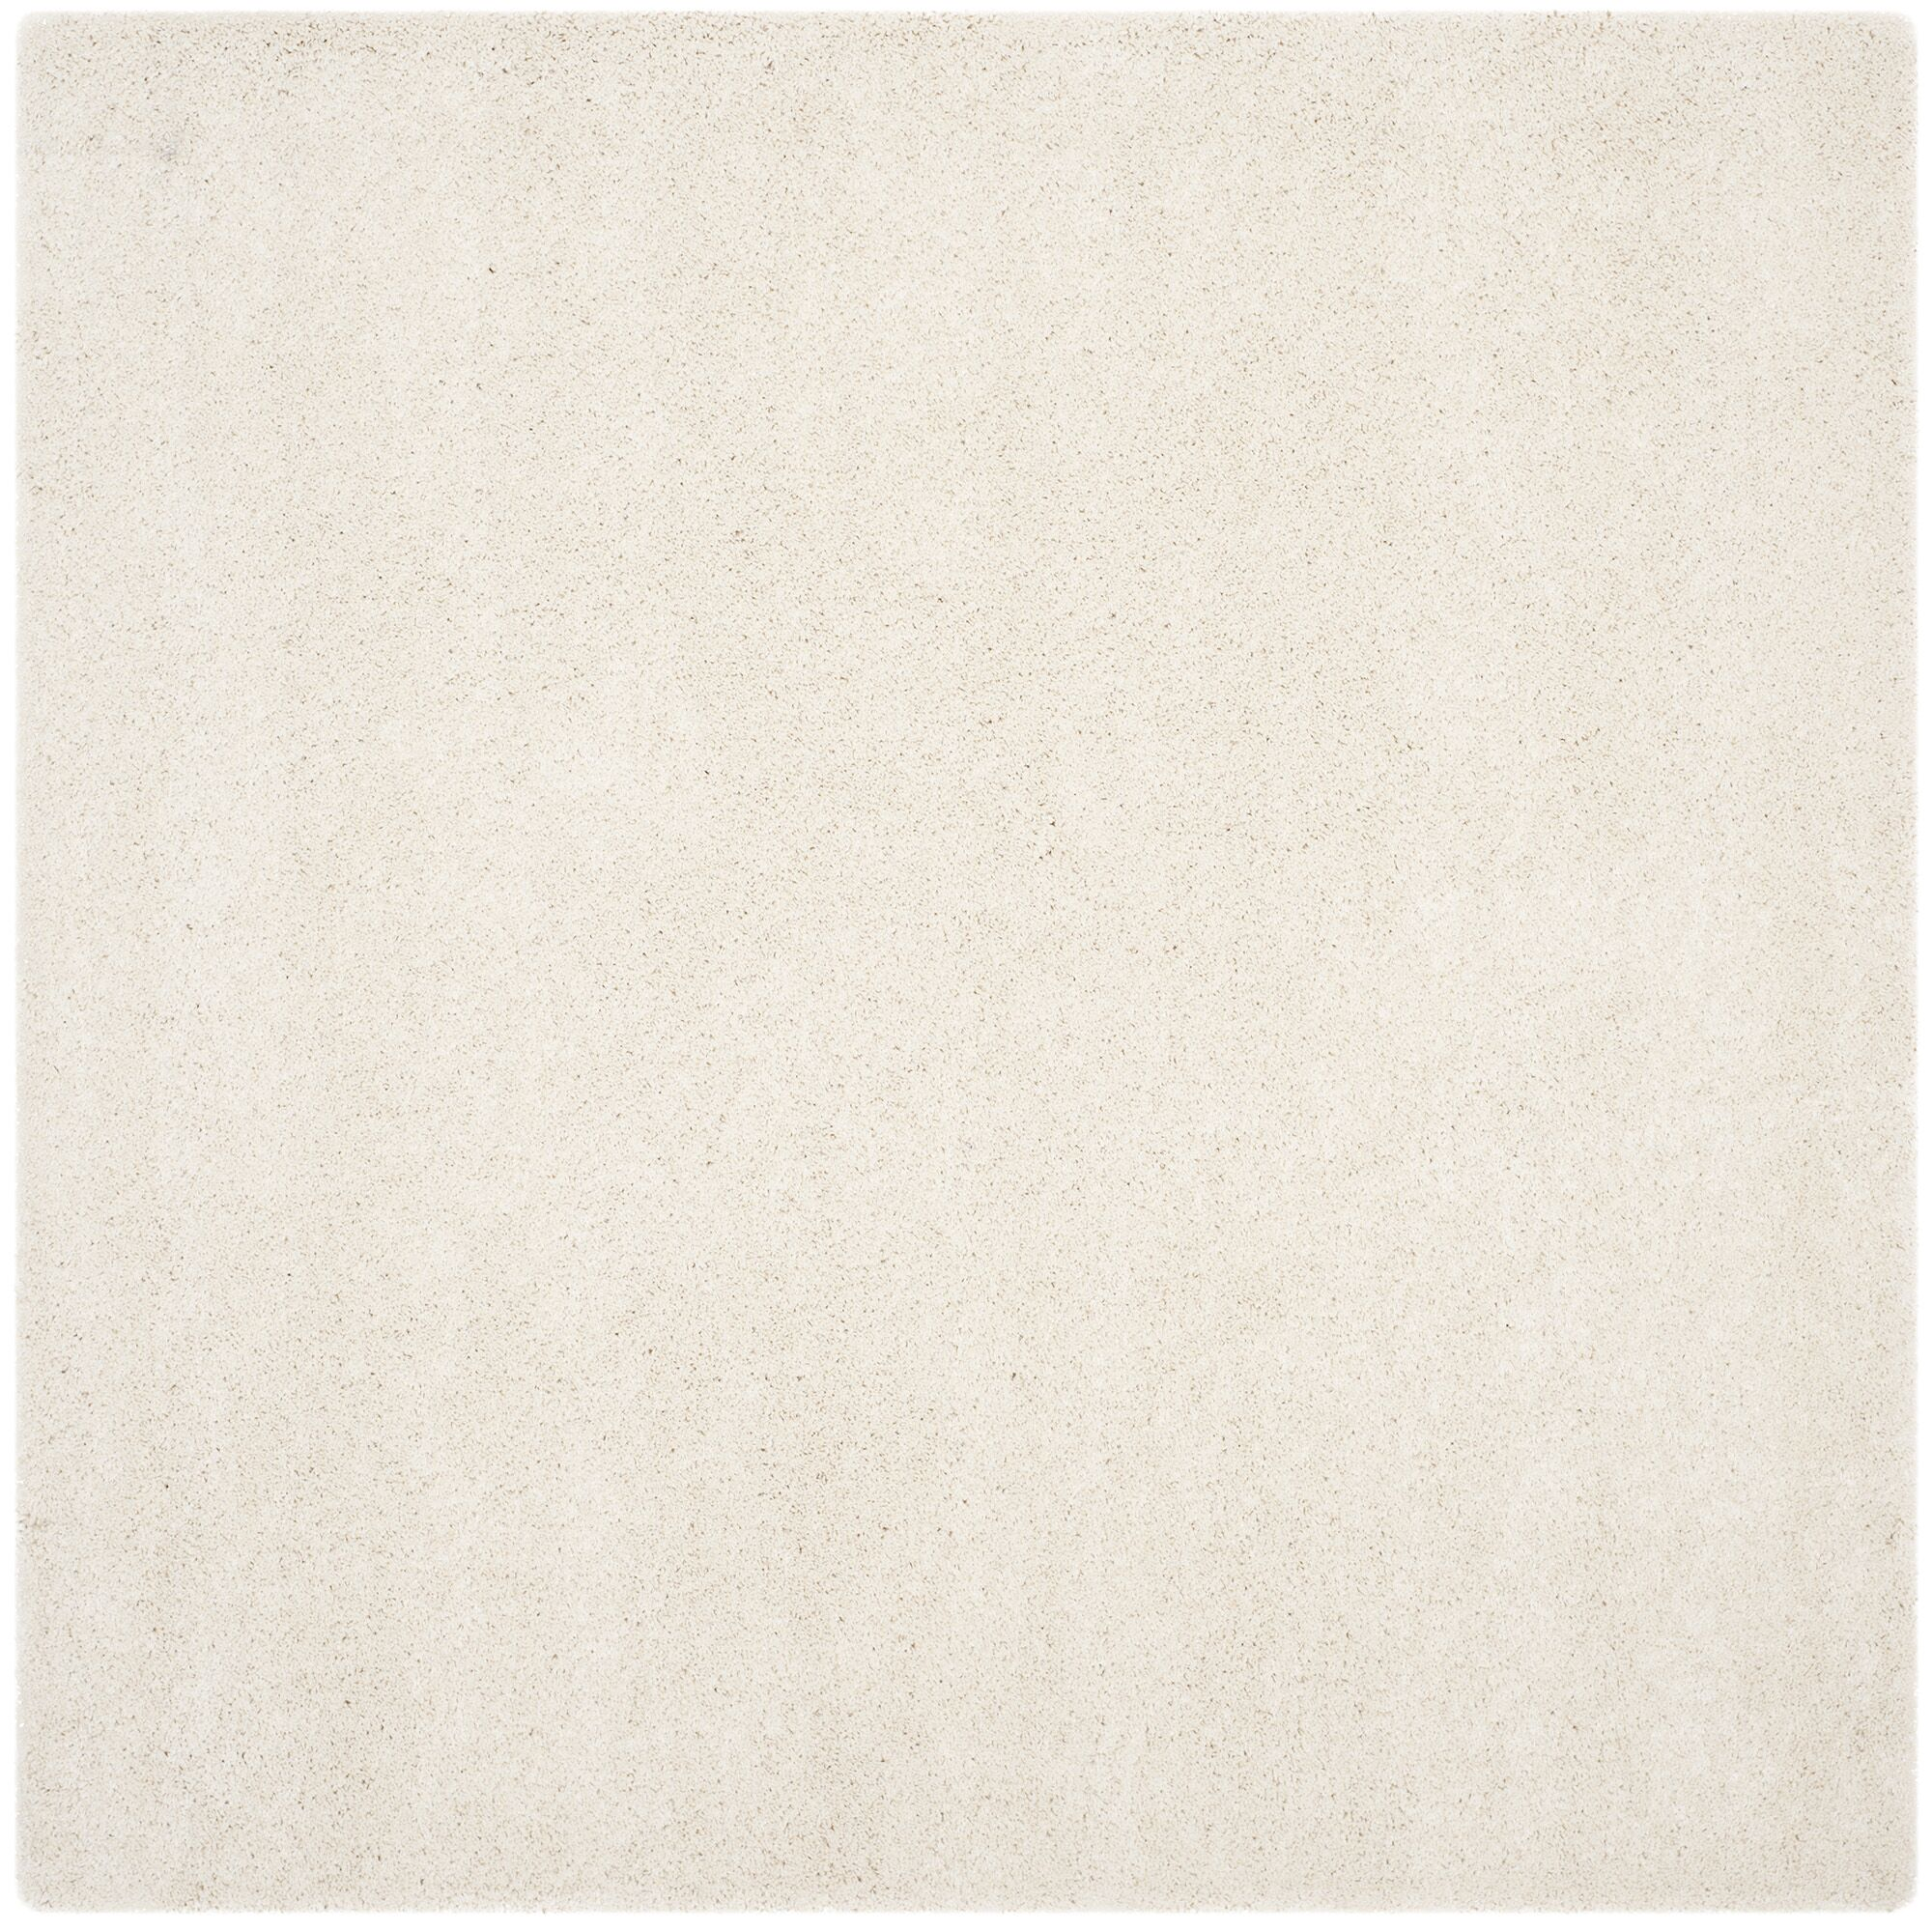 Starr Hill Solid Ivory Area Rug Rug Size: Square 7'